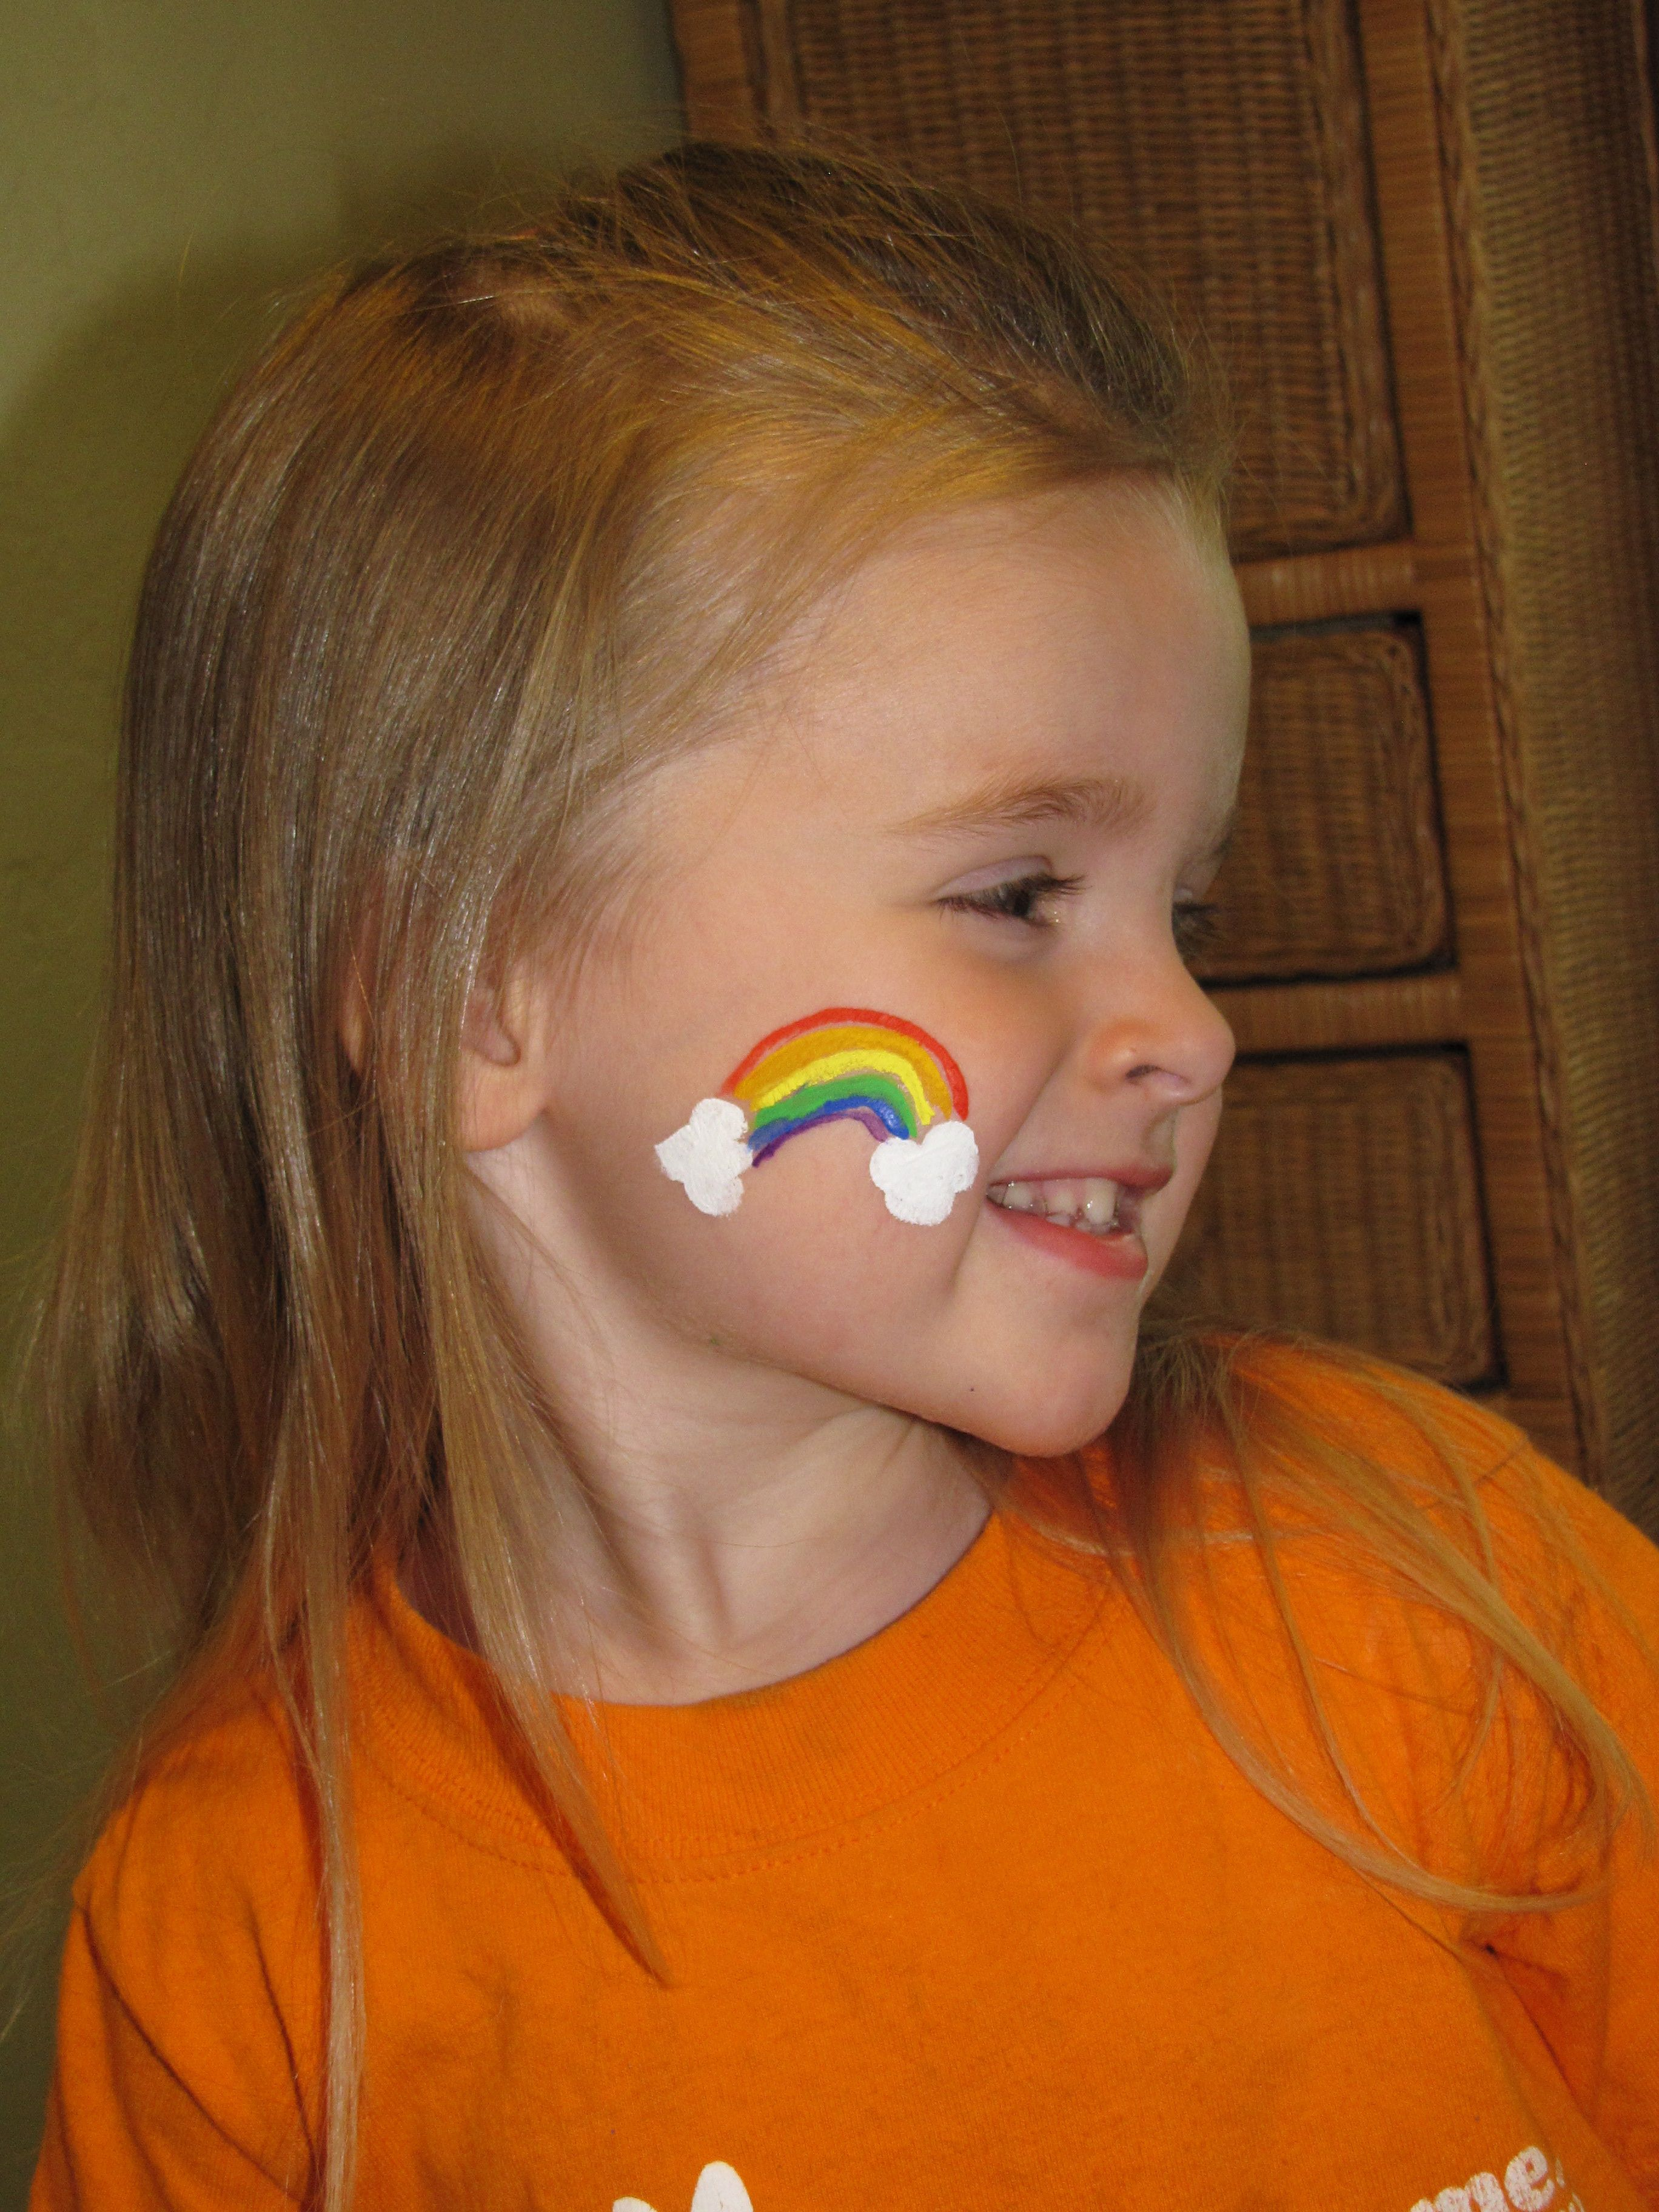 Easy Face Painting Ideas How To Face Paint Description From Pinterest Com I Searched For This O Face Painting Easy Girl Face Painting Face Painting Designs